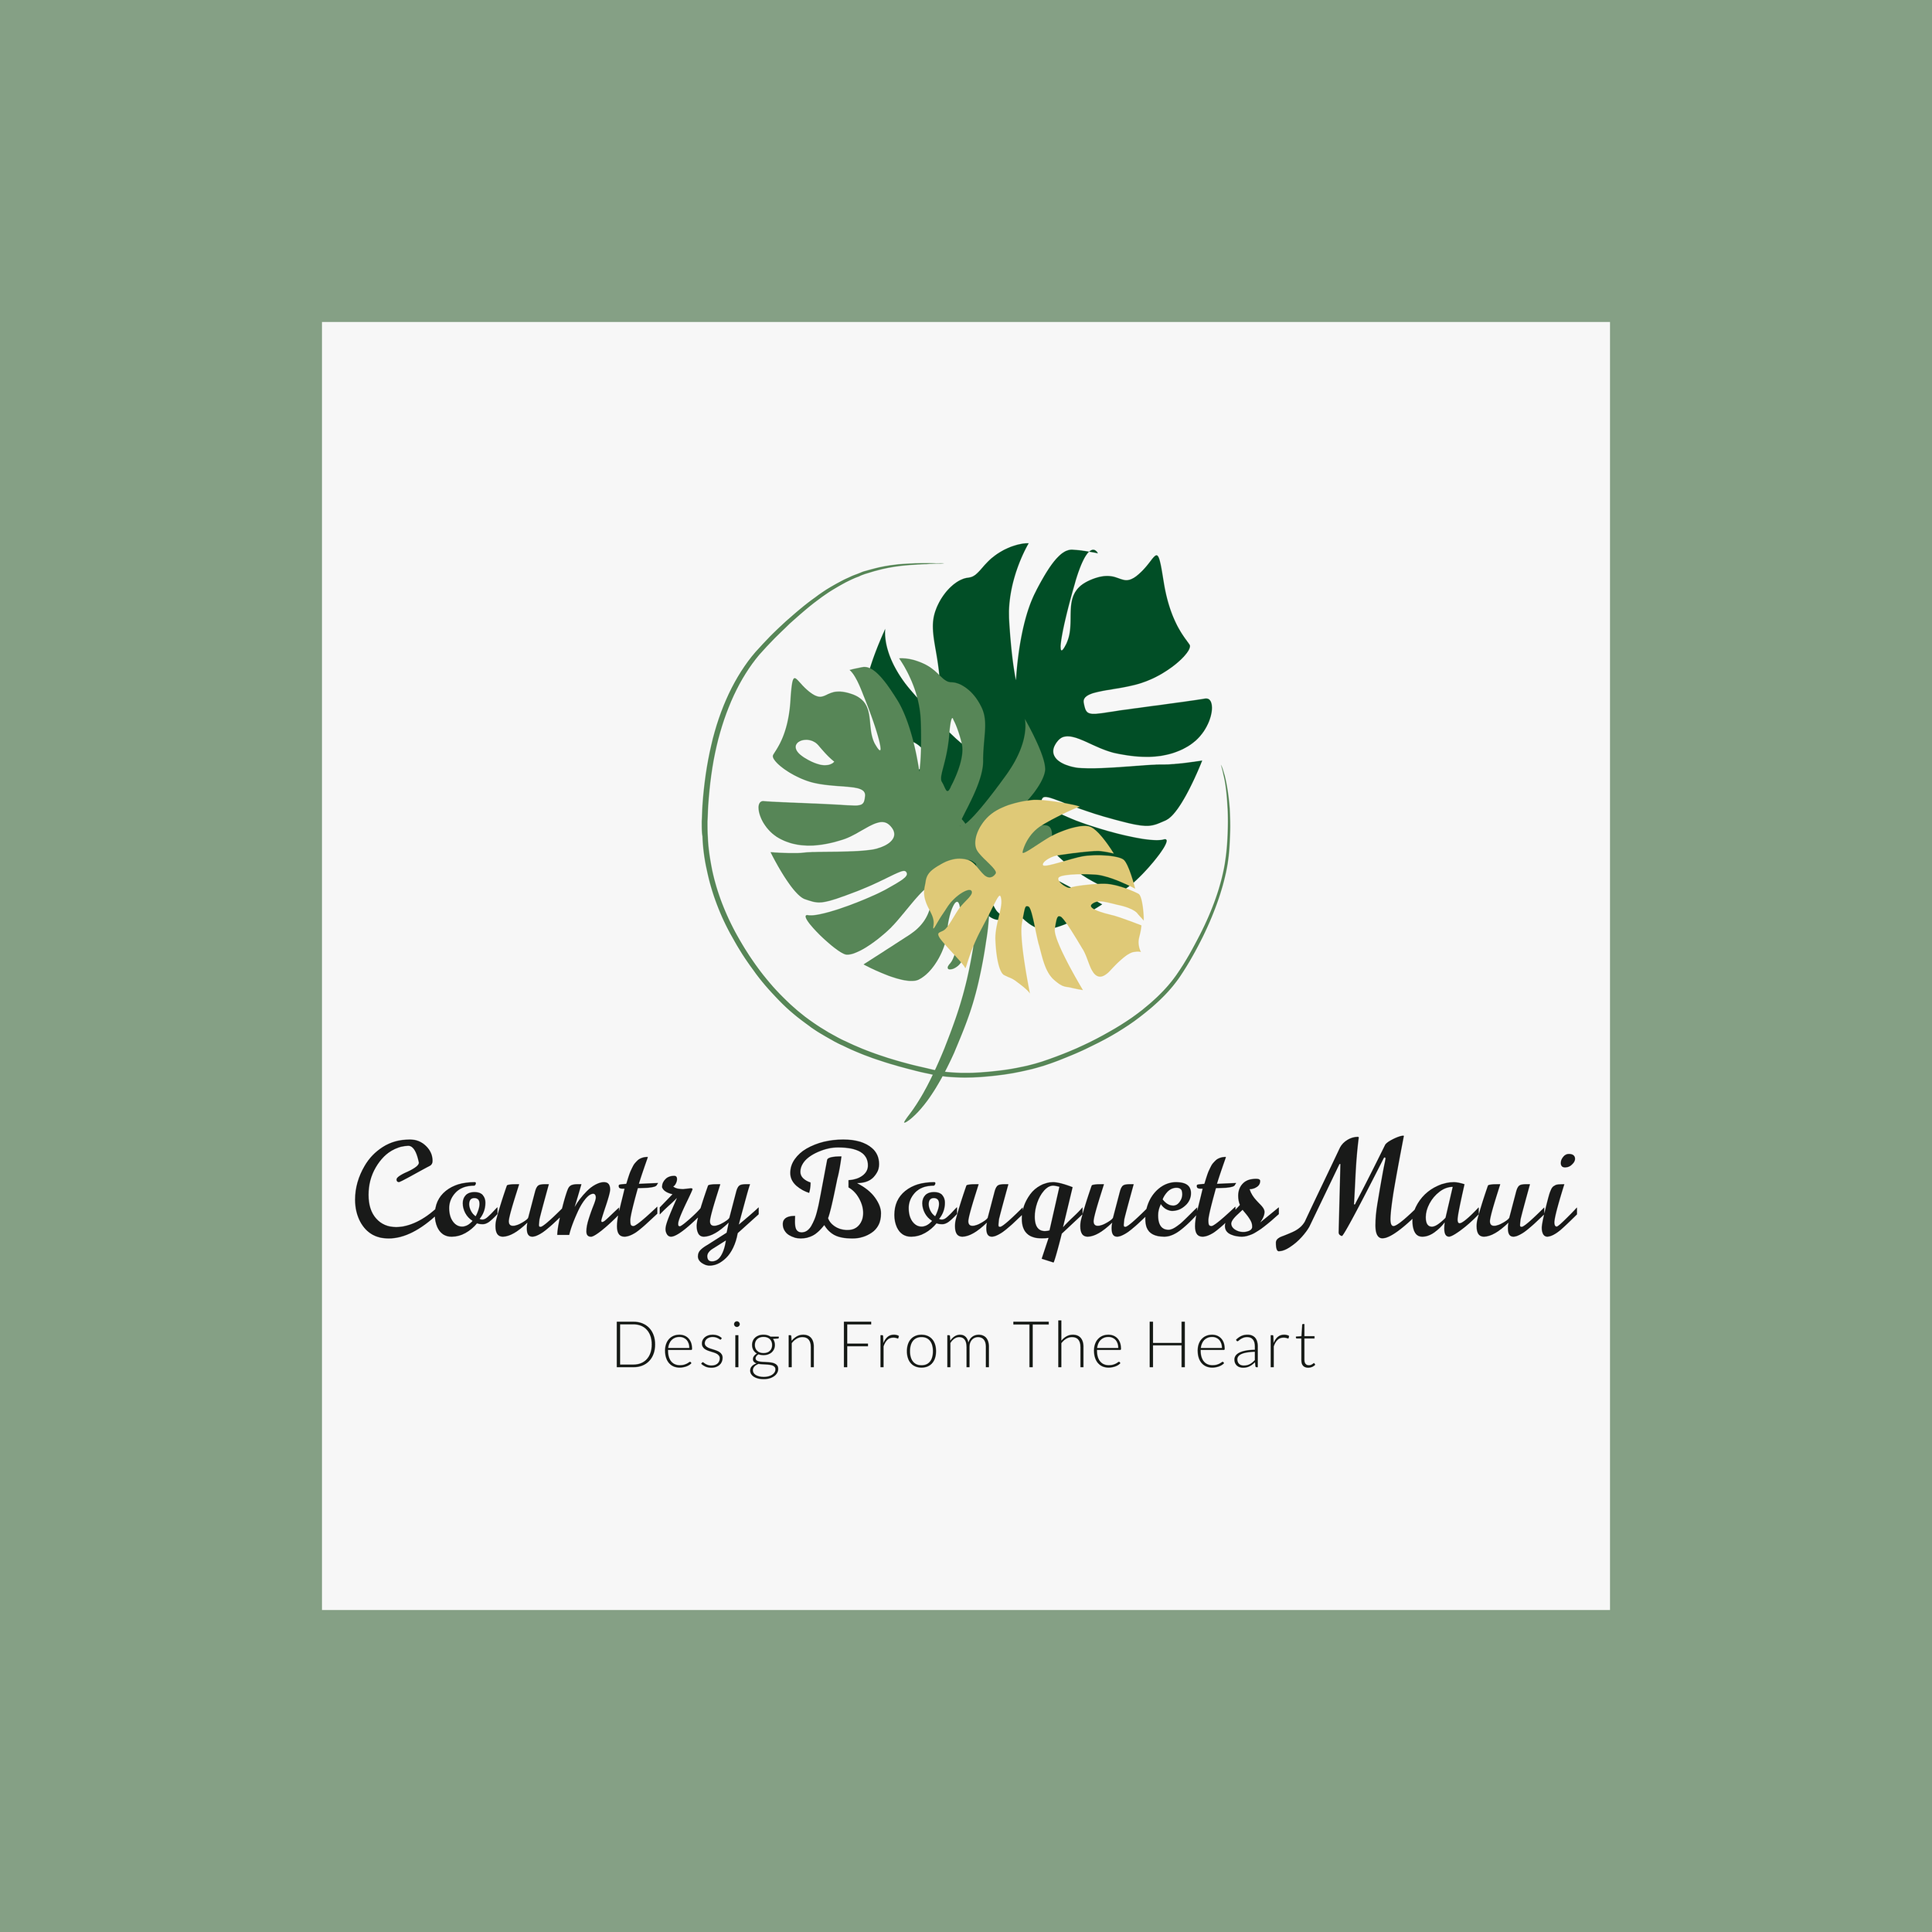 Country Bouquets logo